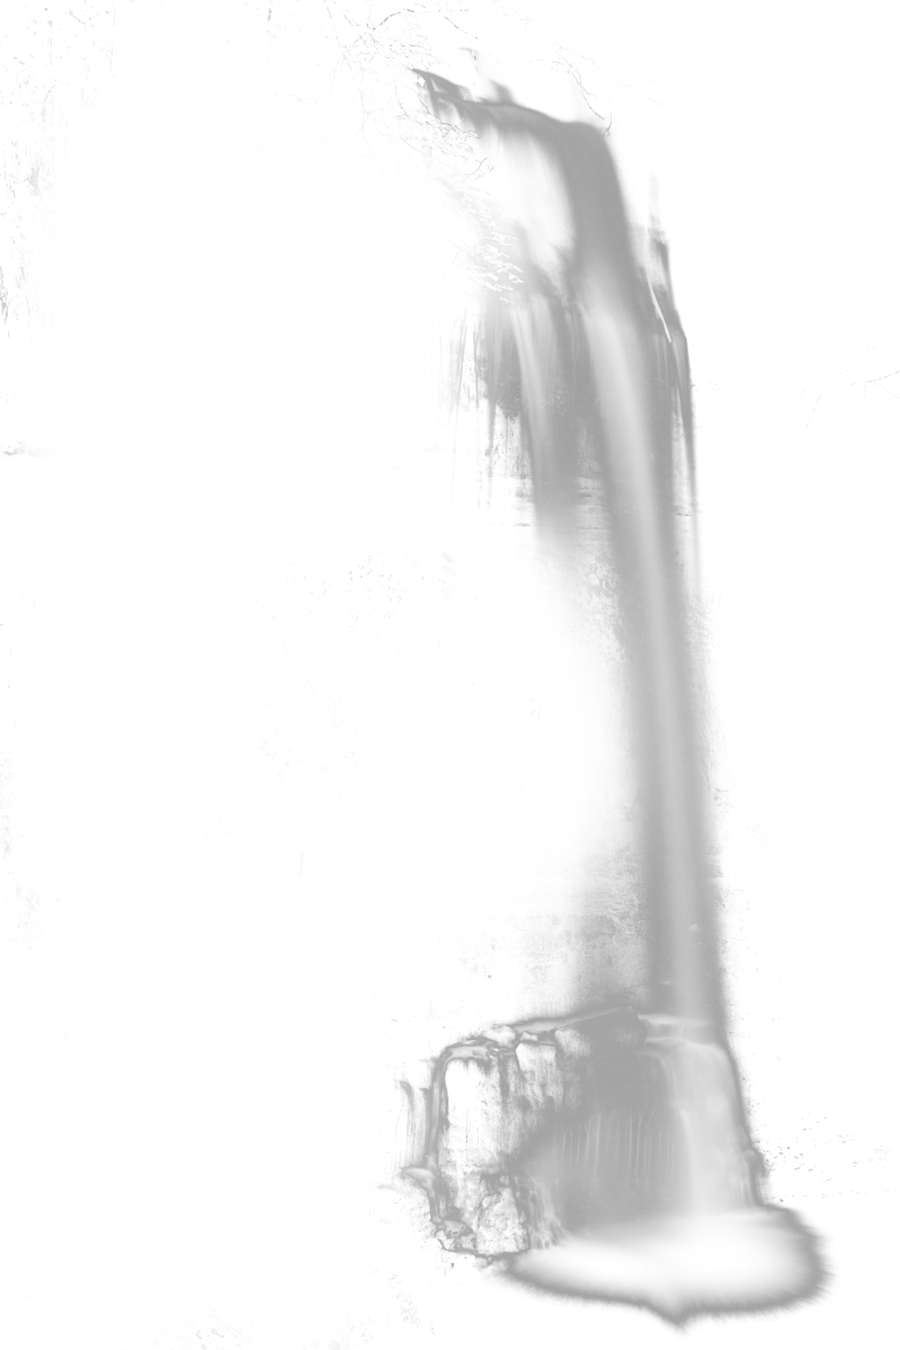 Falling water png. Waterfall transparent images all